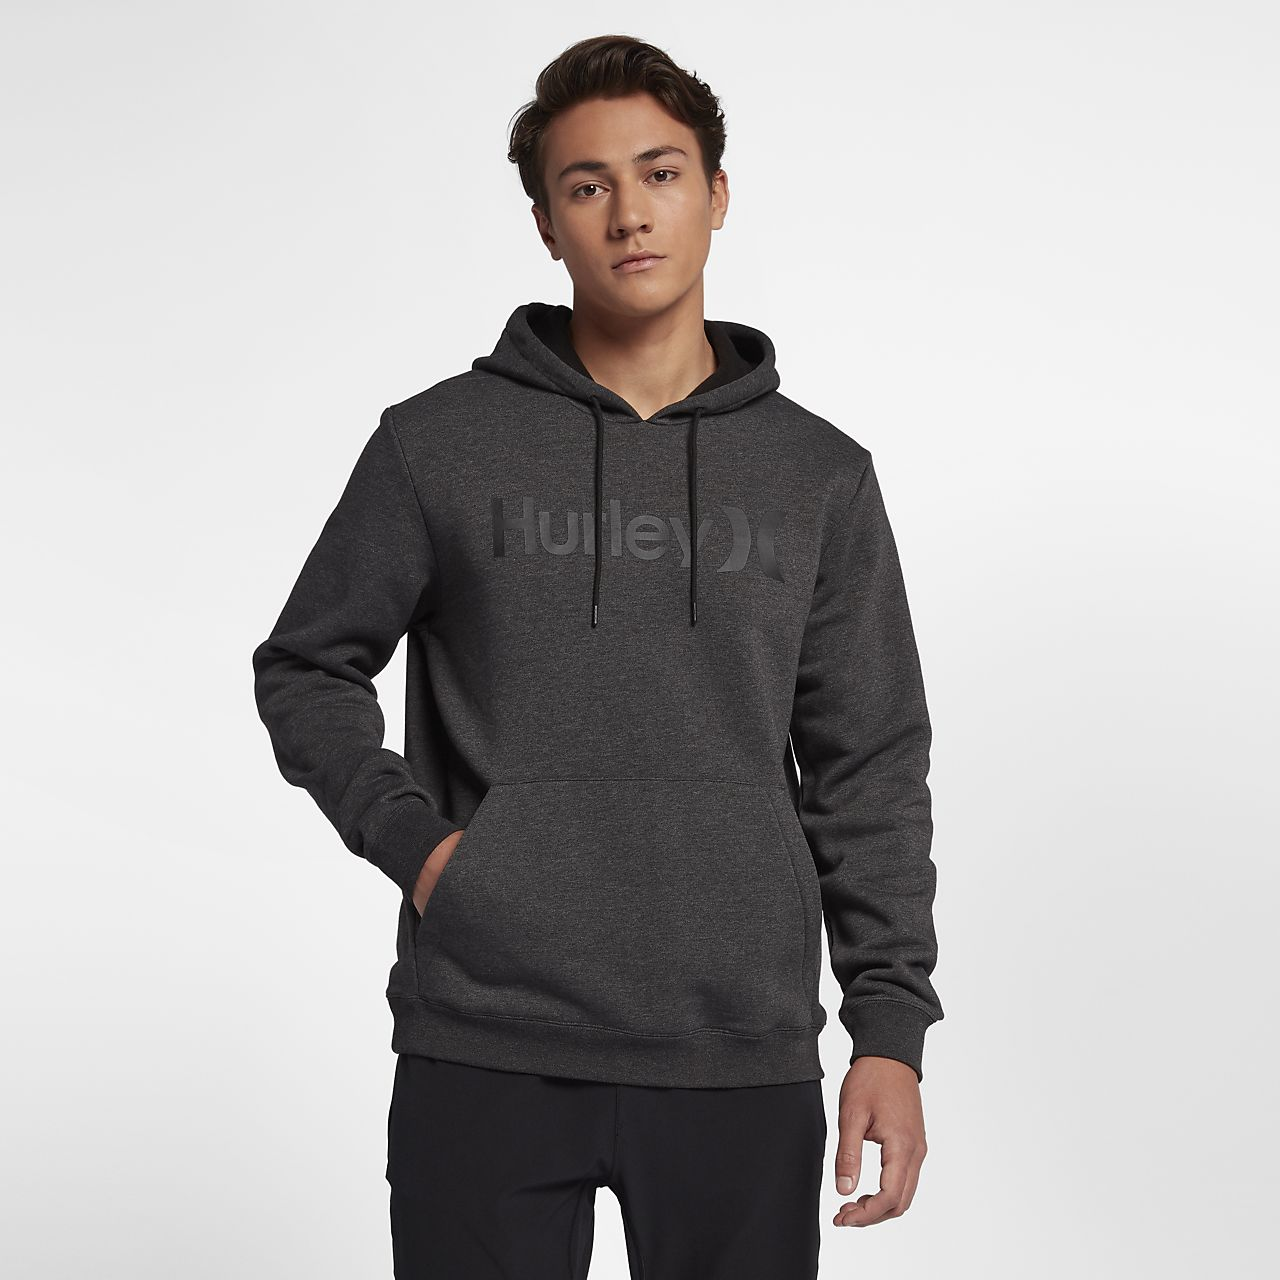 ea58d1034d7d Hurley Surf Check One And Only Herren-Hoodie. Nike.com BE